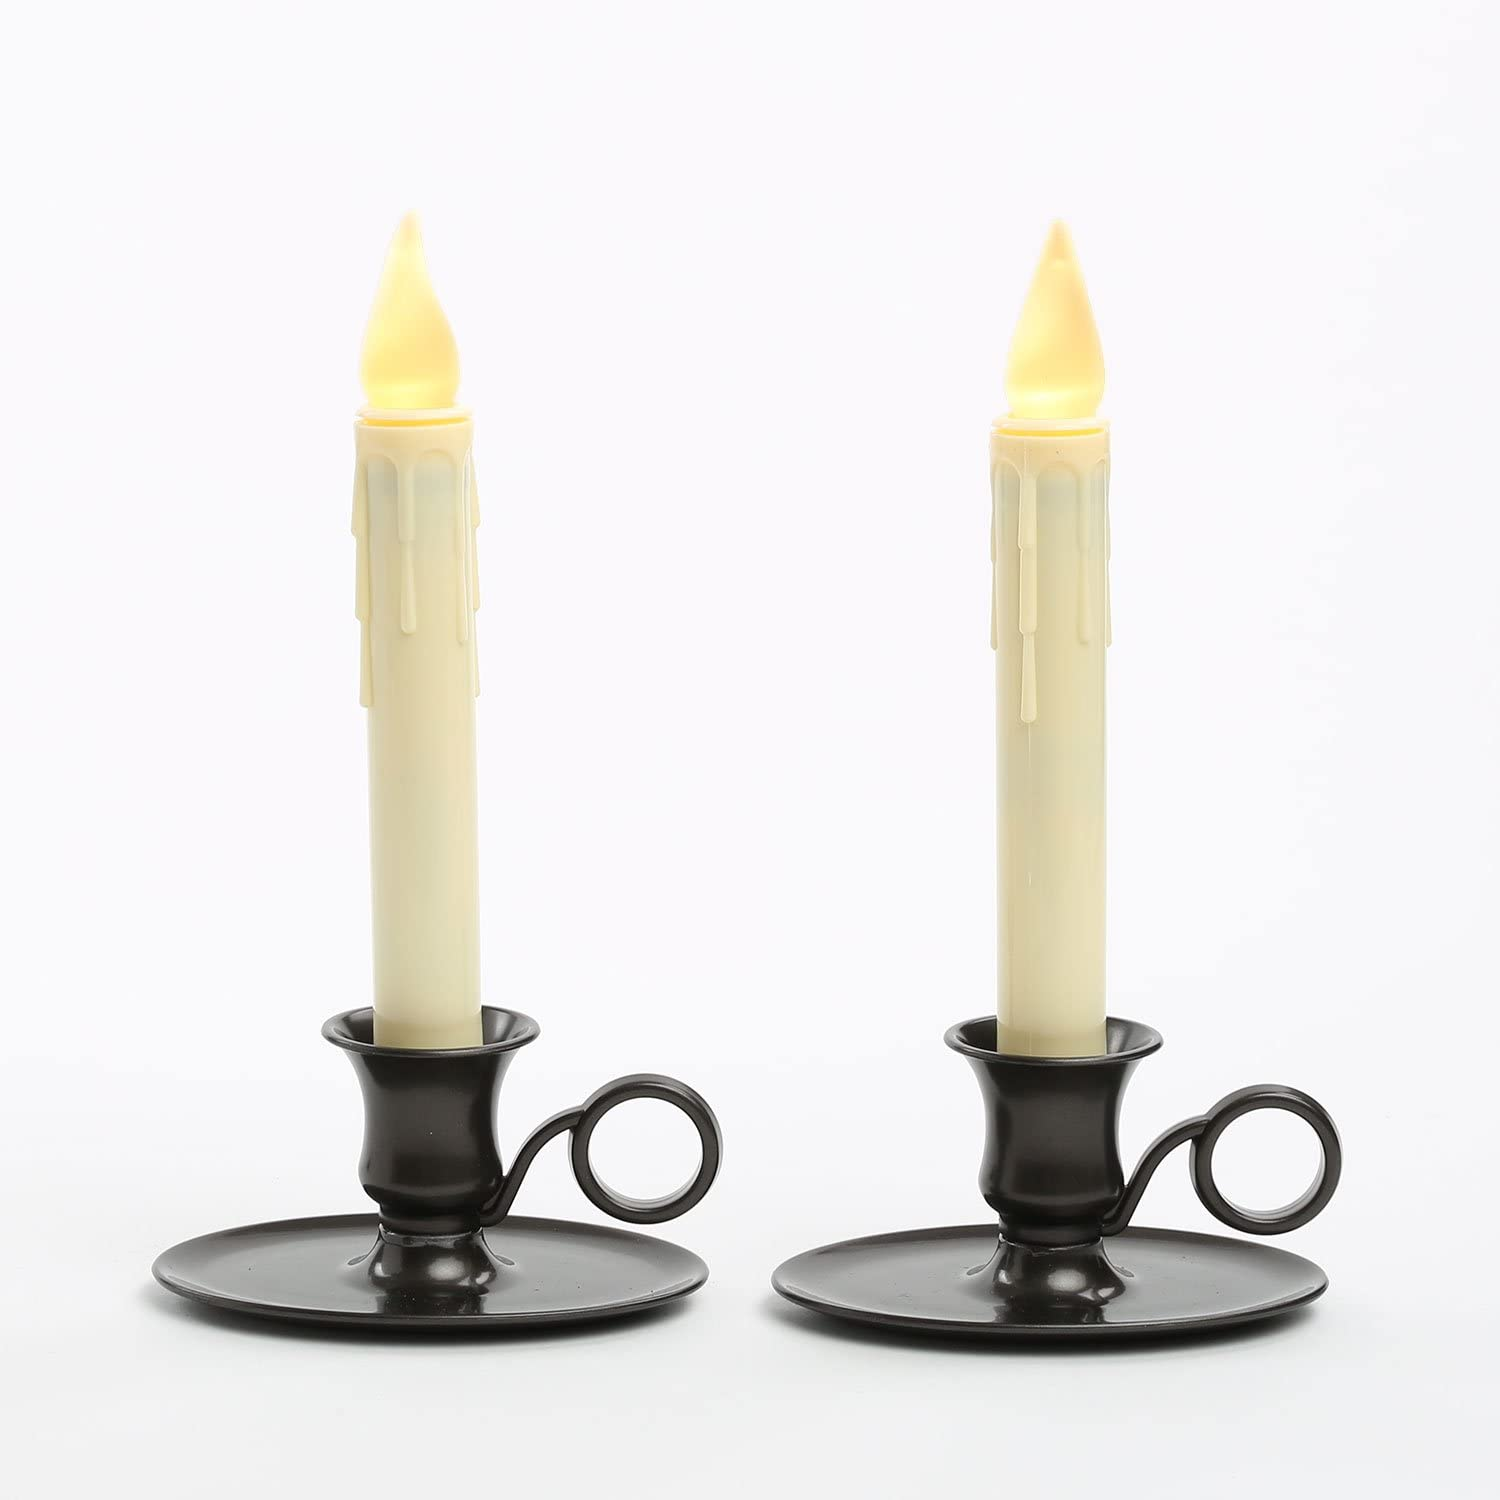 Battery Operated Window Candles - Set of 2, Ivory Taper Candlesticks, Oiled Bronze Style Chamberstick Holders, Warm White LED Lights, Automatic Timer, Christmas Decorations - Batteries Included